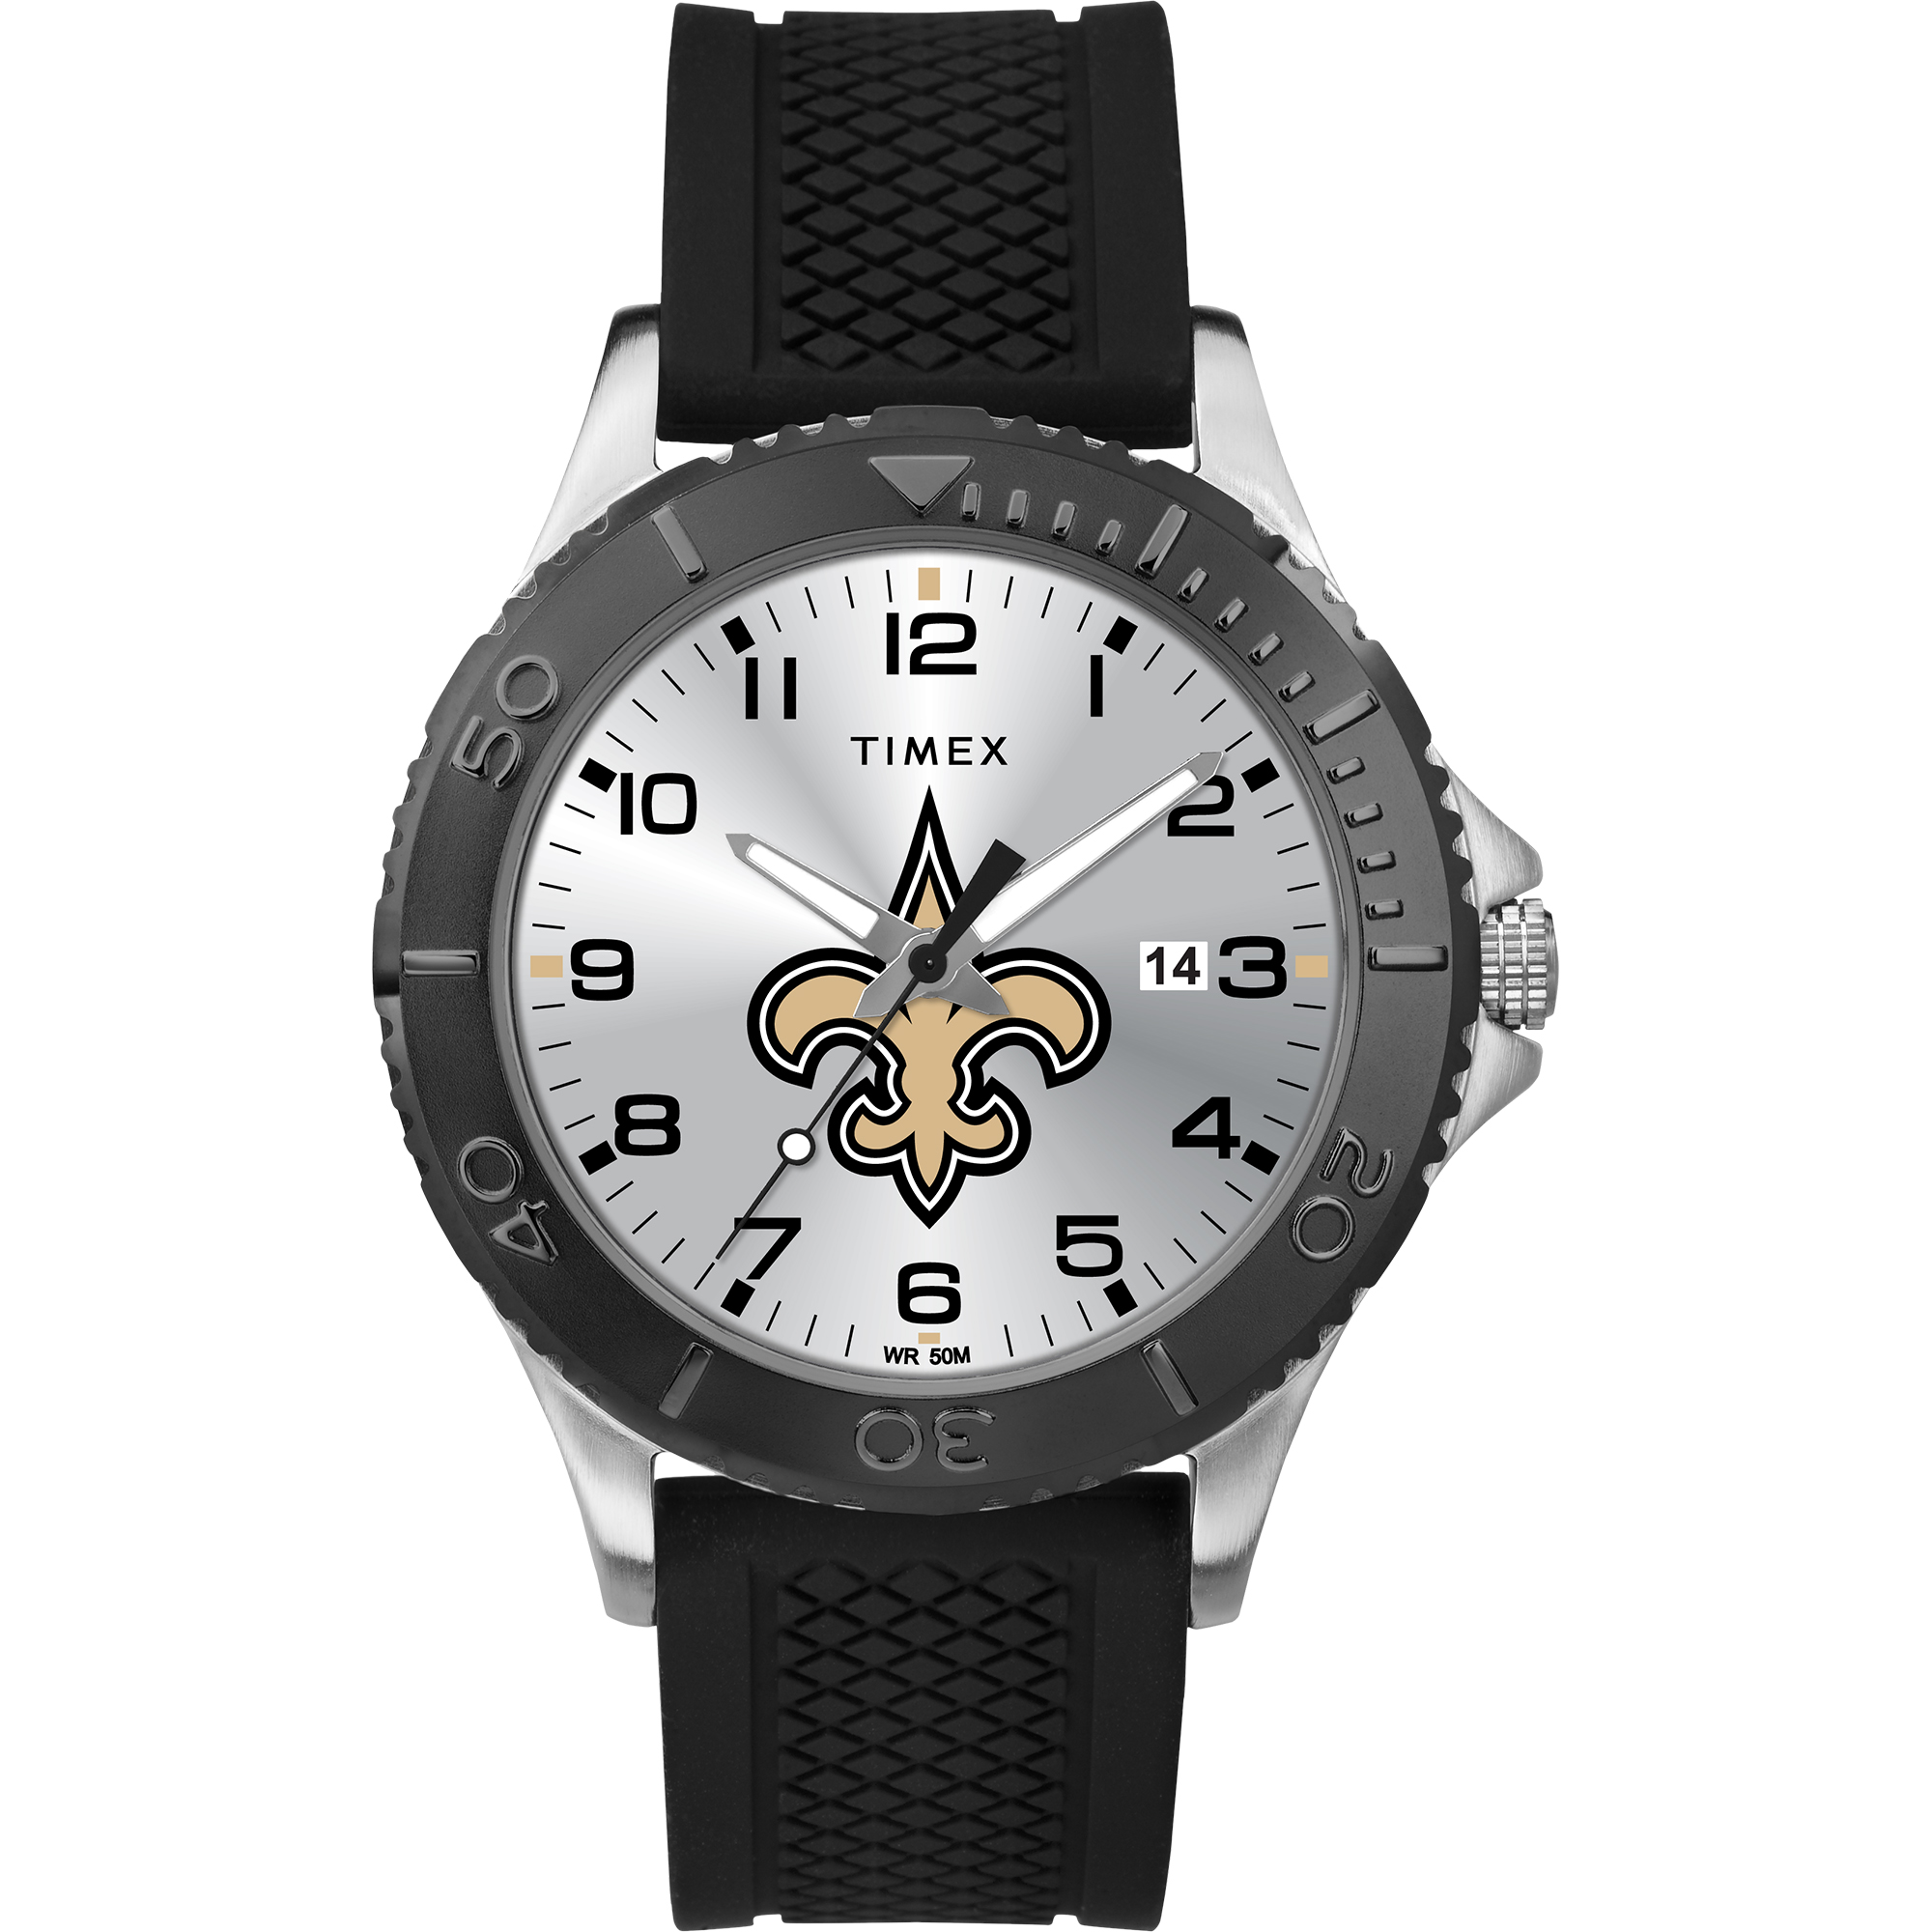 Timex - NFL Tribute Collection Gamer Black Men's Watch, New Orleans Saints